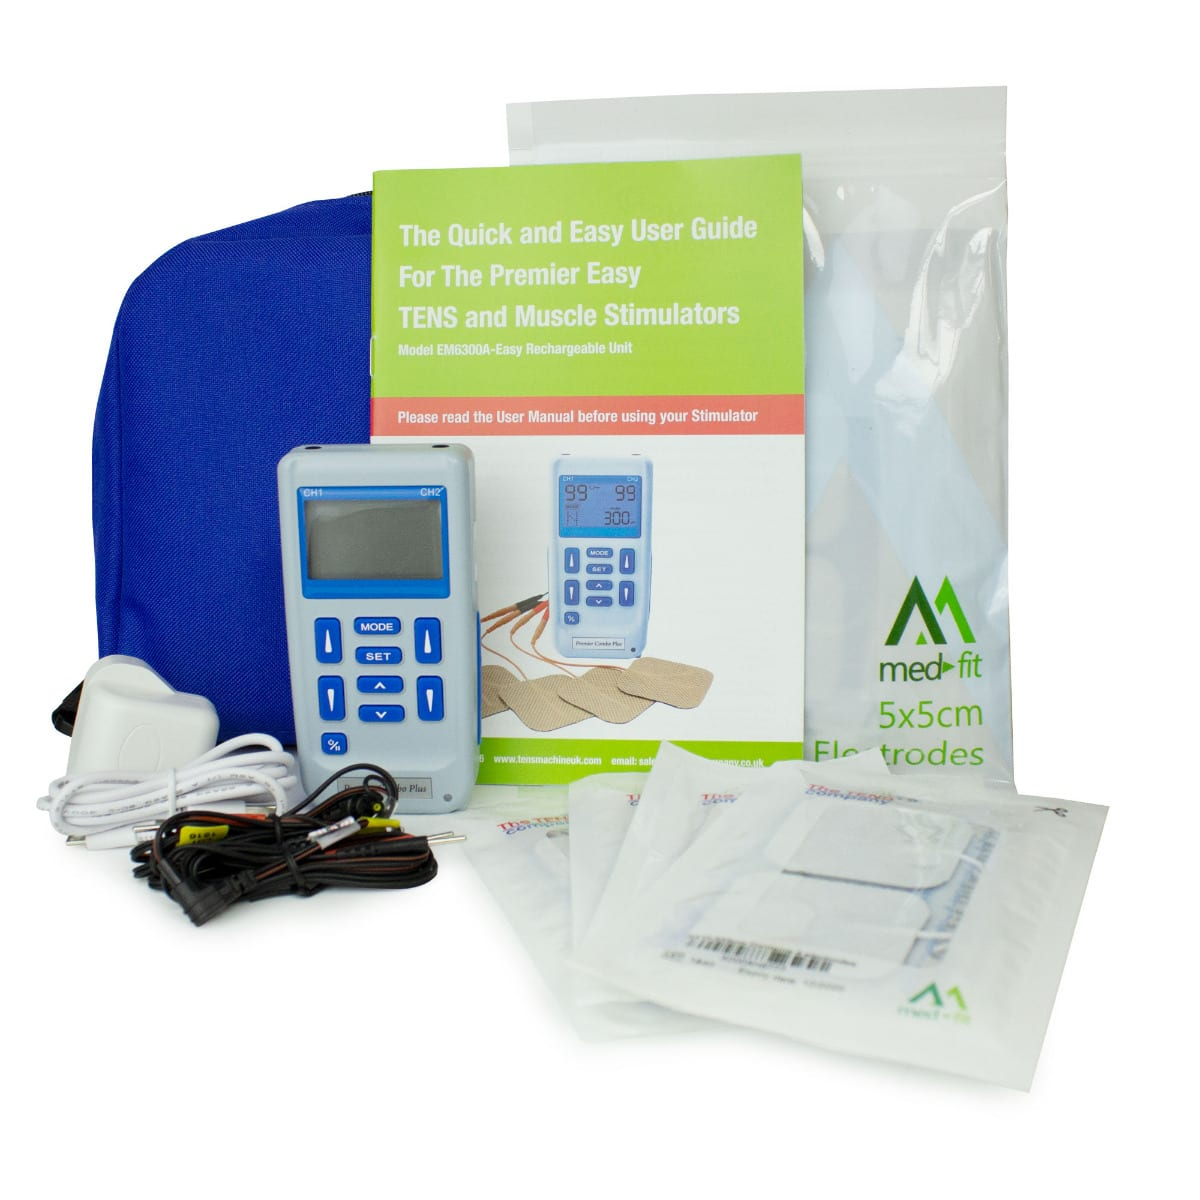 The picture shows a full pack of MEDFIT tens equipment. In this package comes with electrodes, the tens unit, wires and a manual to allow the user to understand all programs and placement of the electrodes